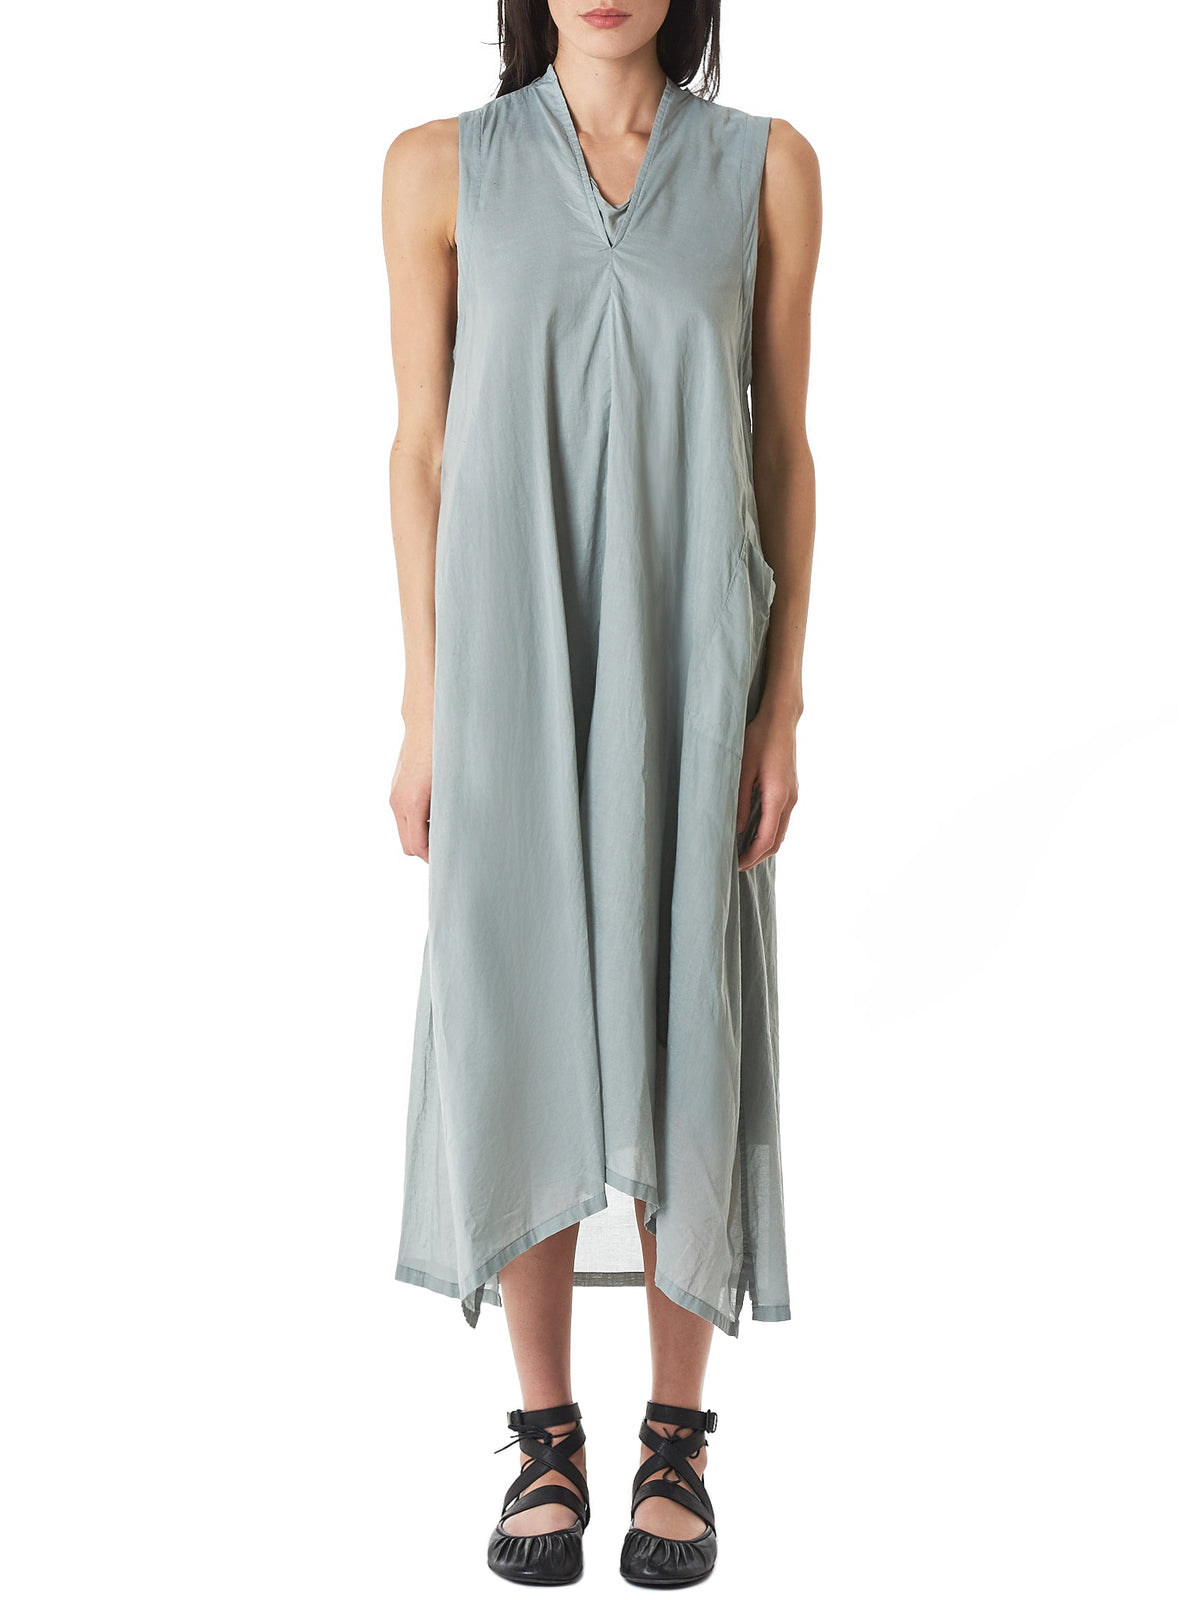 Sleeveless Layered Dress (YZ-D07-028-LIGHT-GREEN)